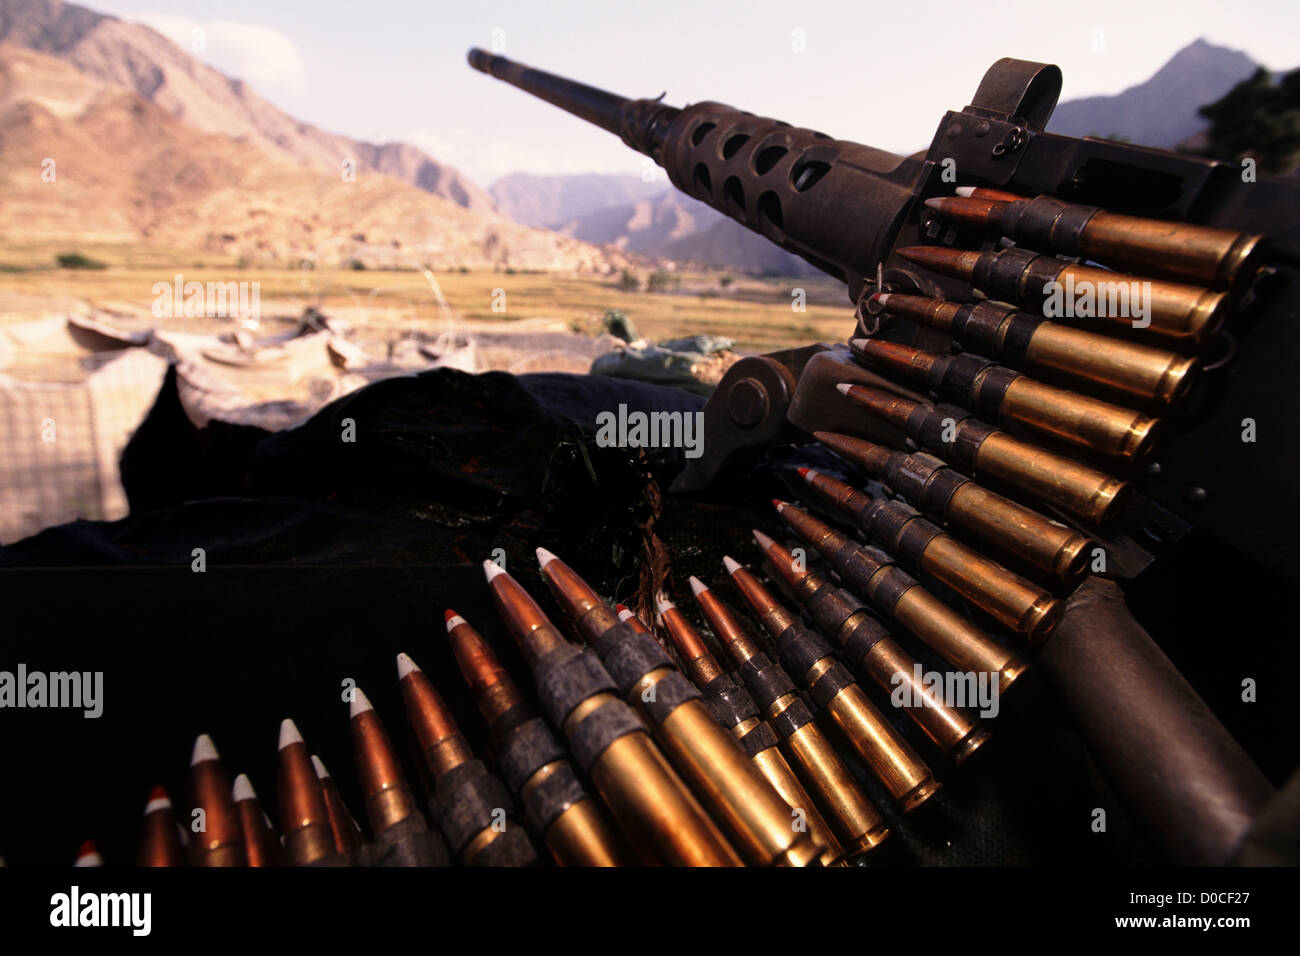 M2 .50 Caliber Machine Gun, Camp Blessing, Afghanistan - Stock Image